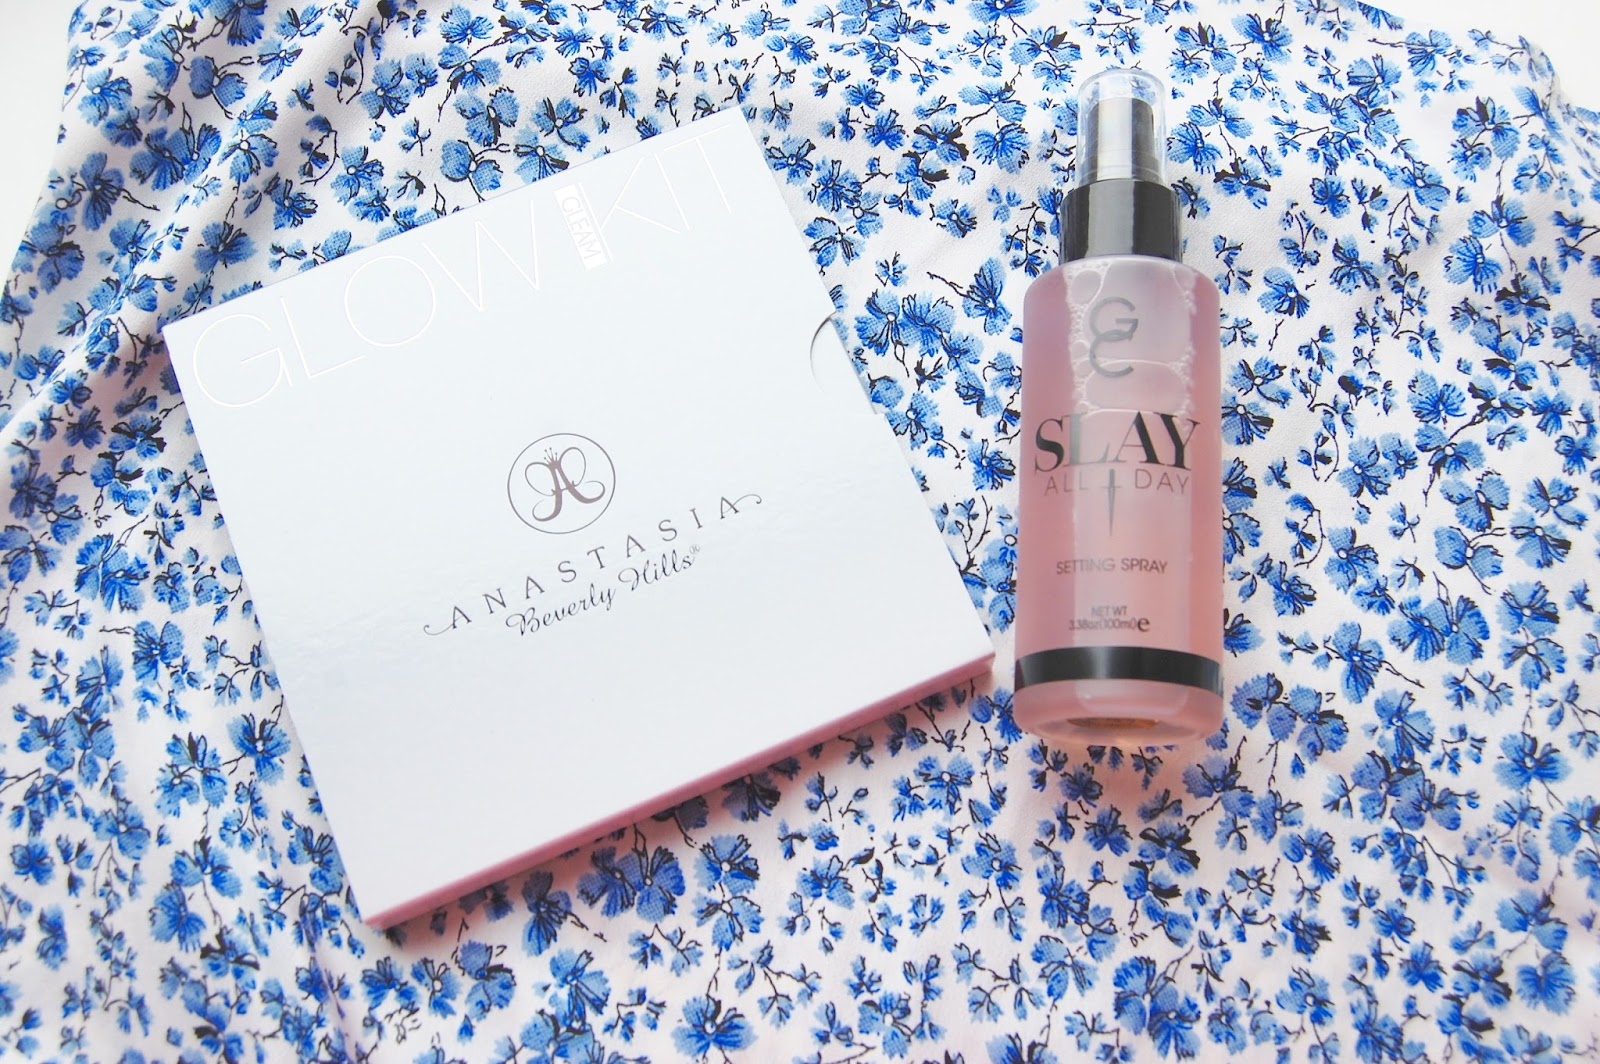 See my ABH Gleam Kit and Gerard Cosmetics Slay Spray review here